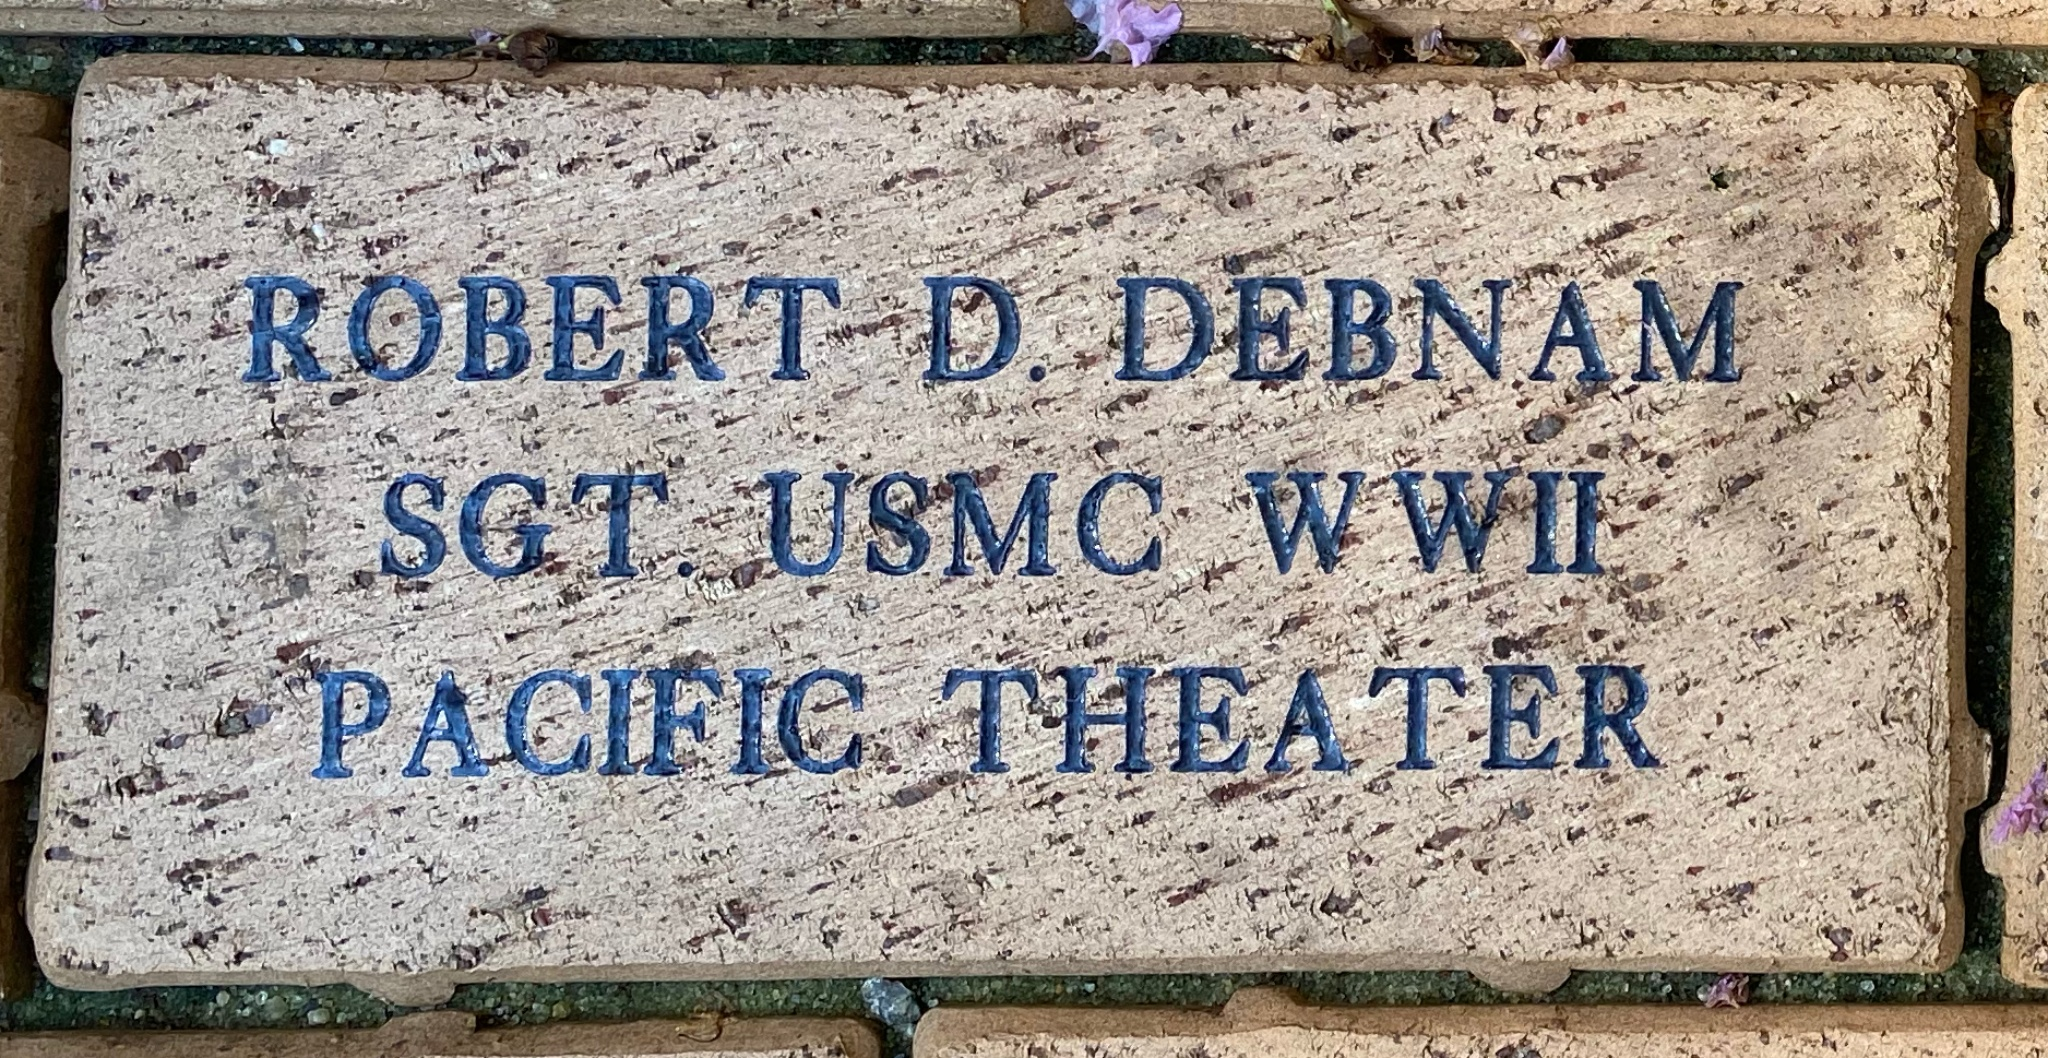 ROBERT D. DEBNAM SGT. USMC WWII PACIFIC THEATER